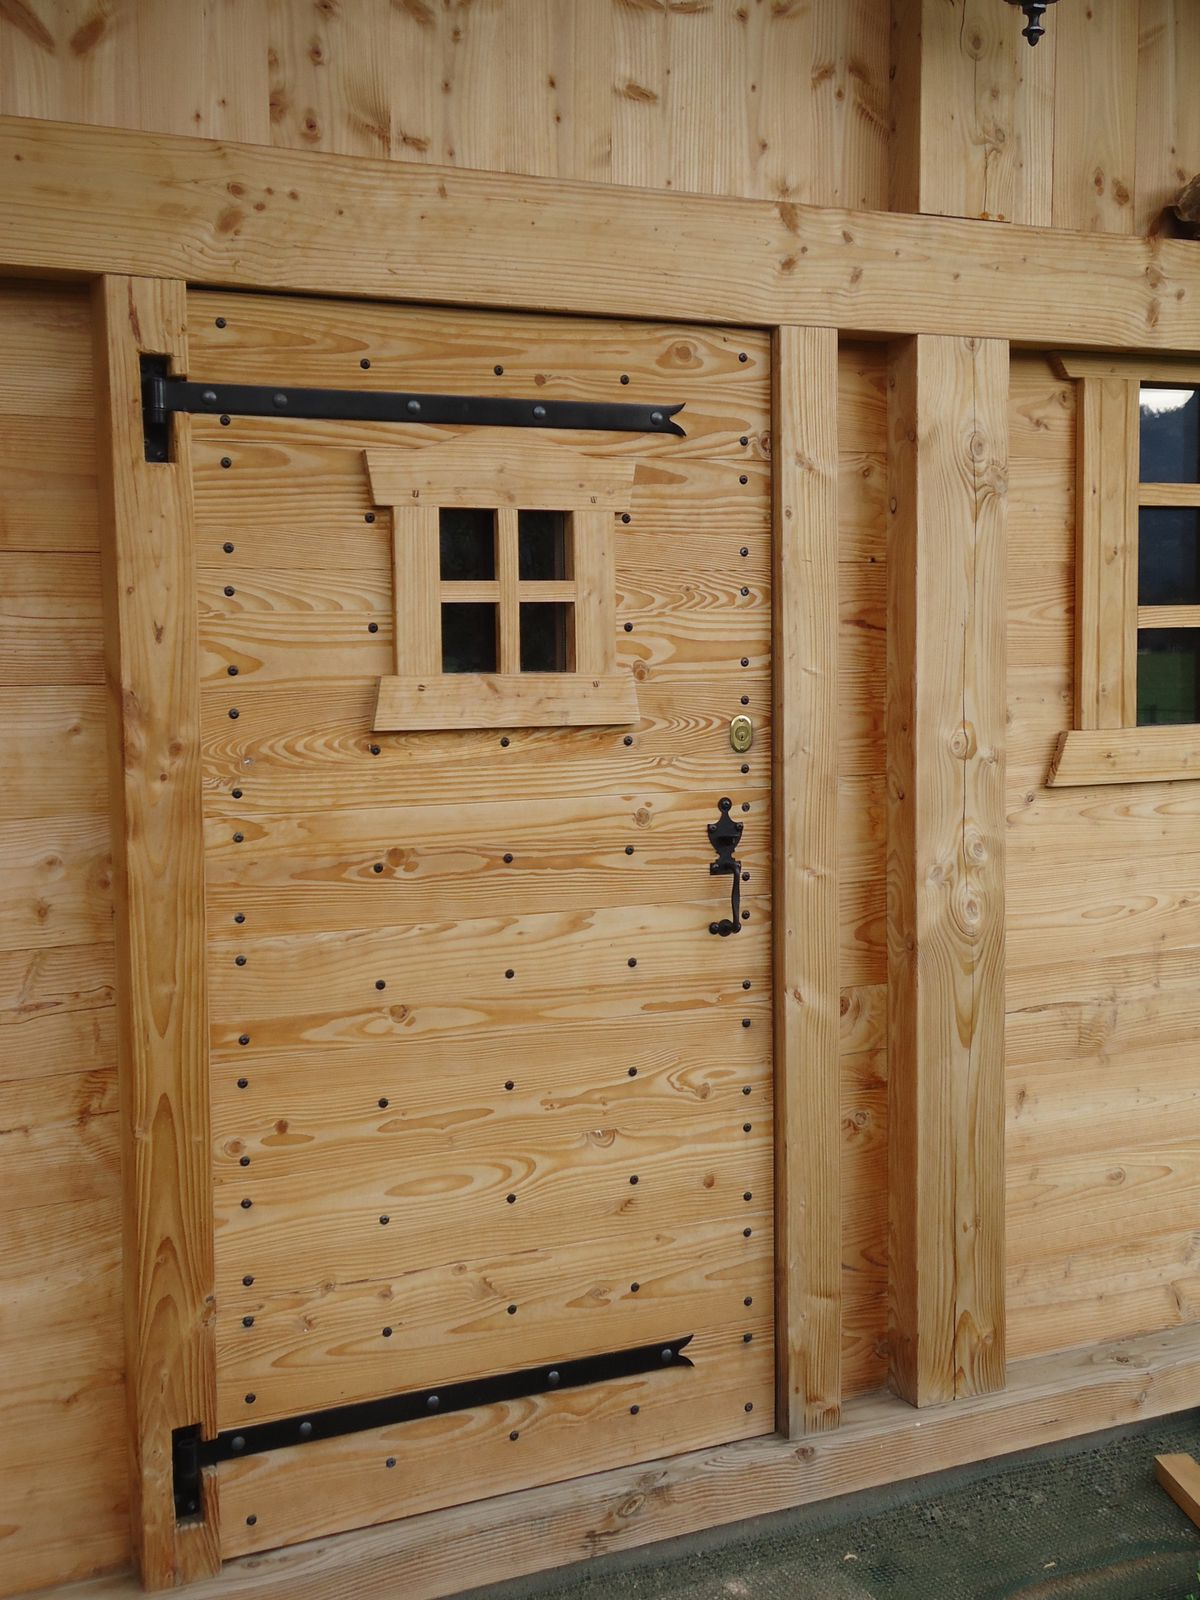 Porte de chalet abrit de jardin tb creation bois for Porte de bois